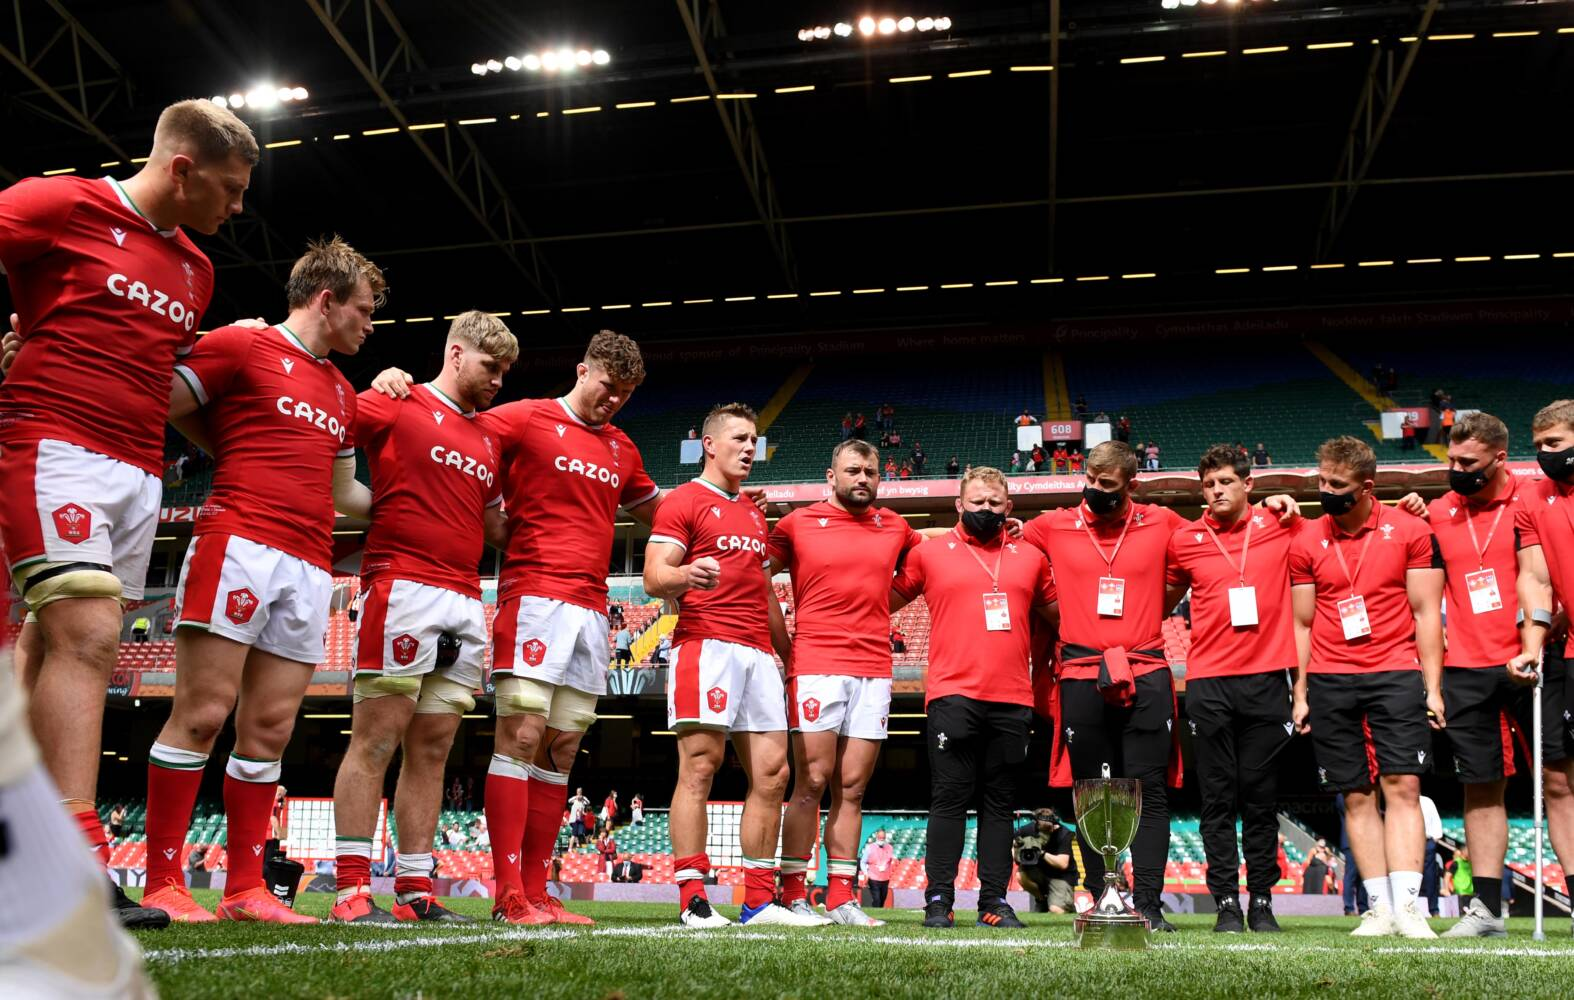 Wales vs Canada: The best of the reaction